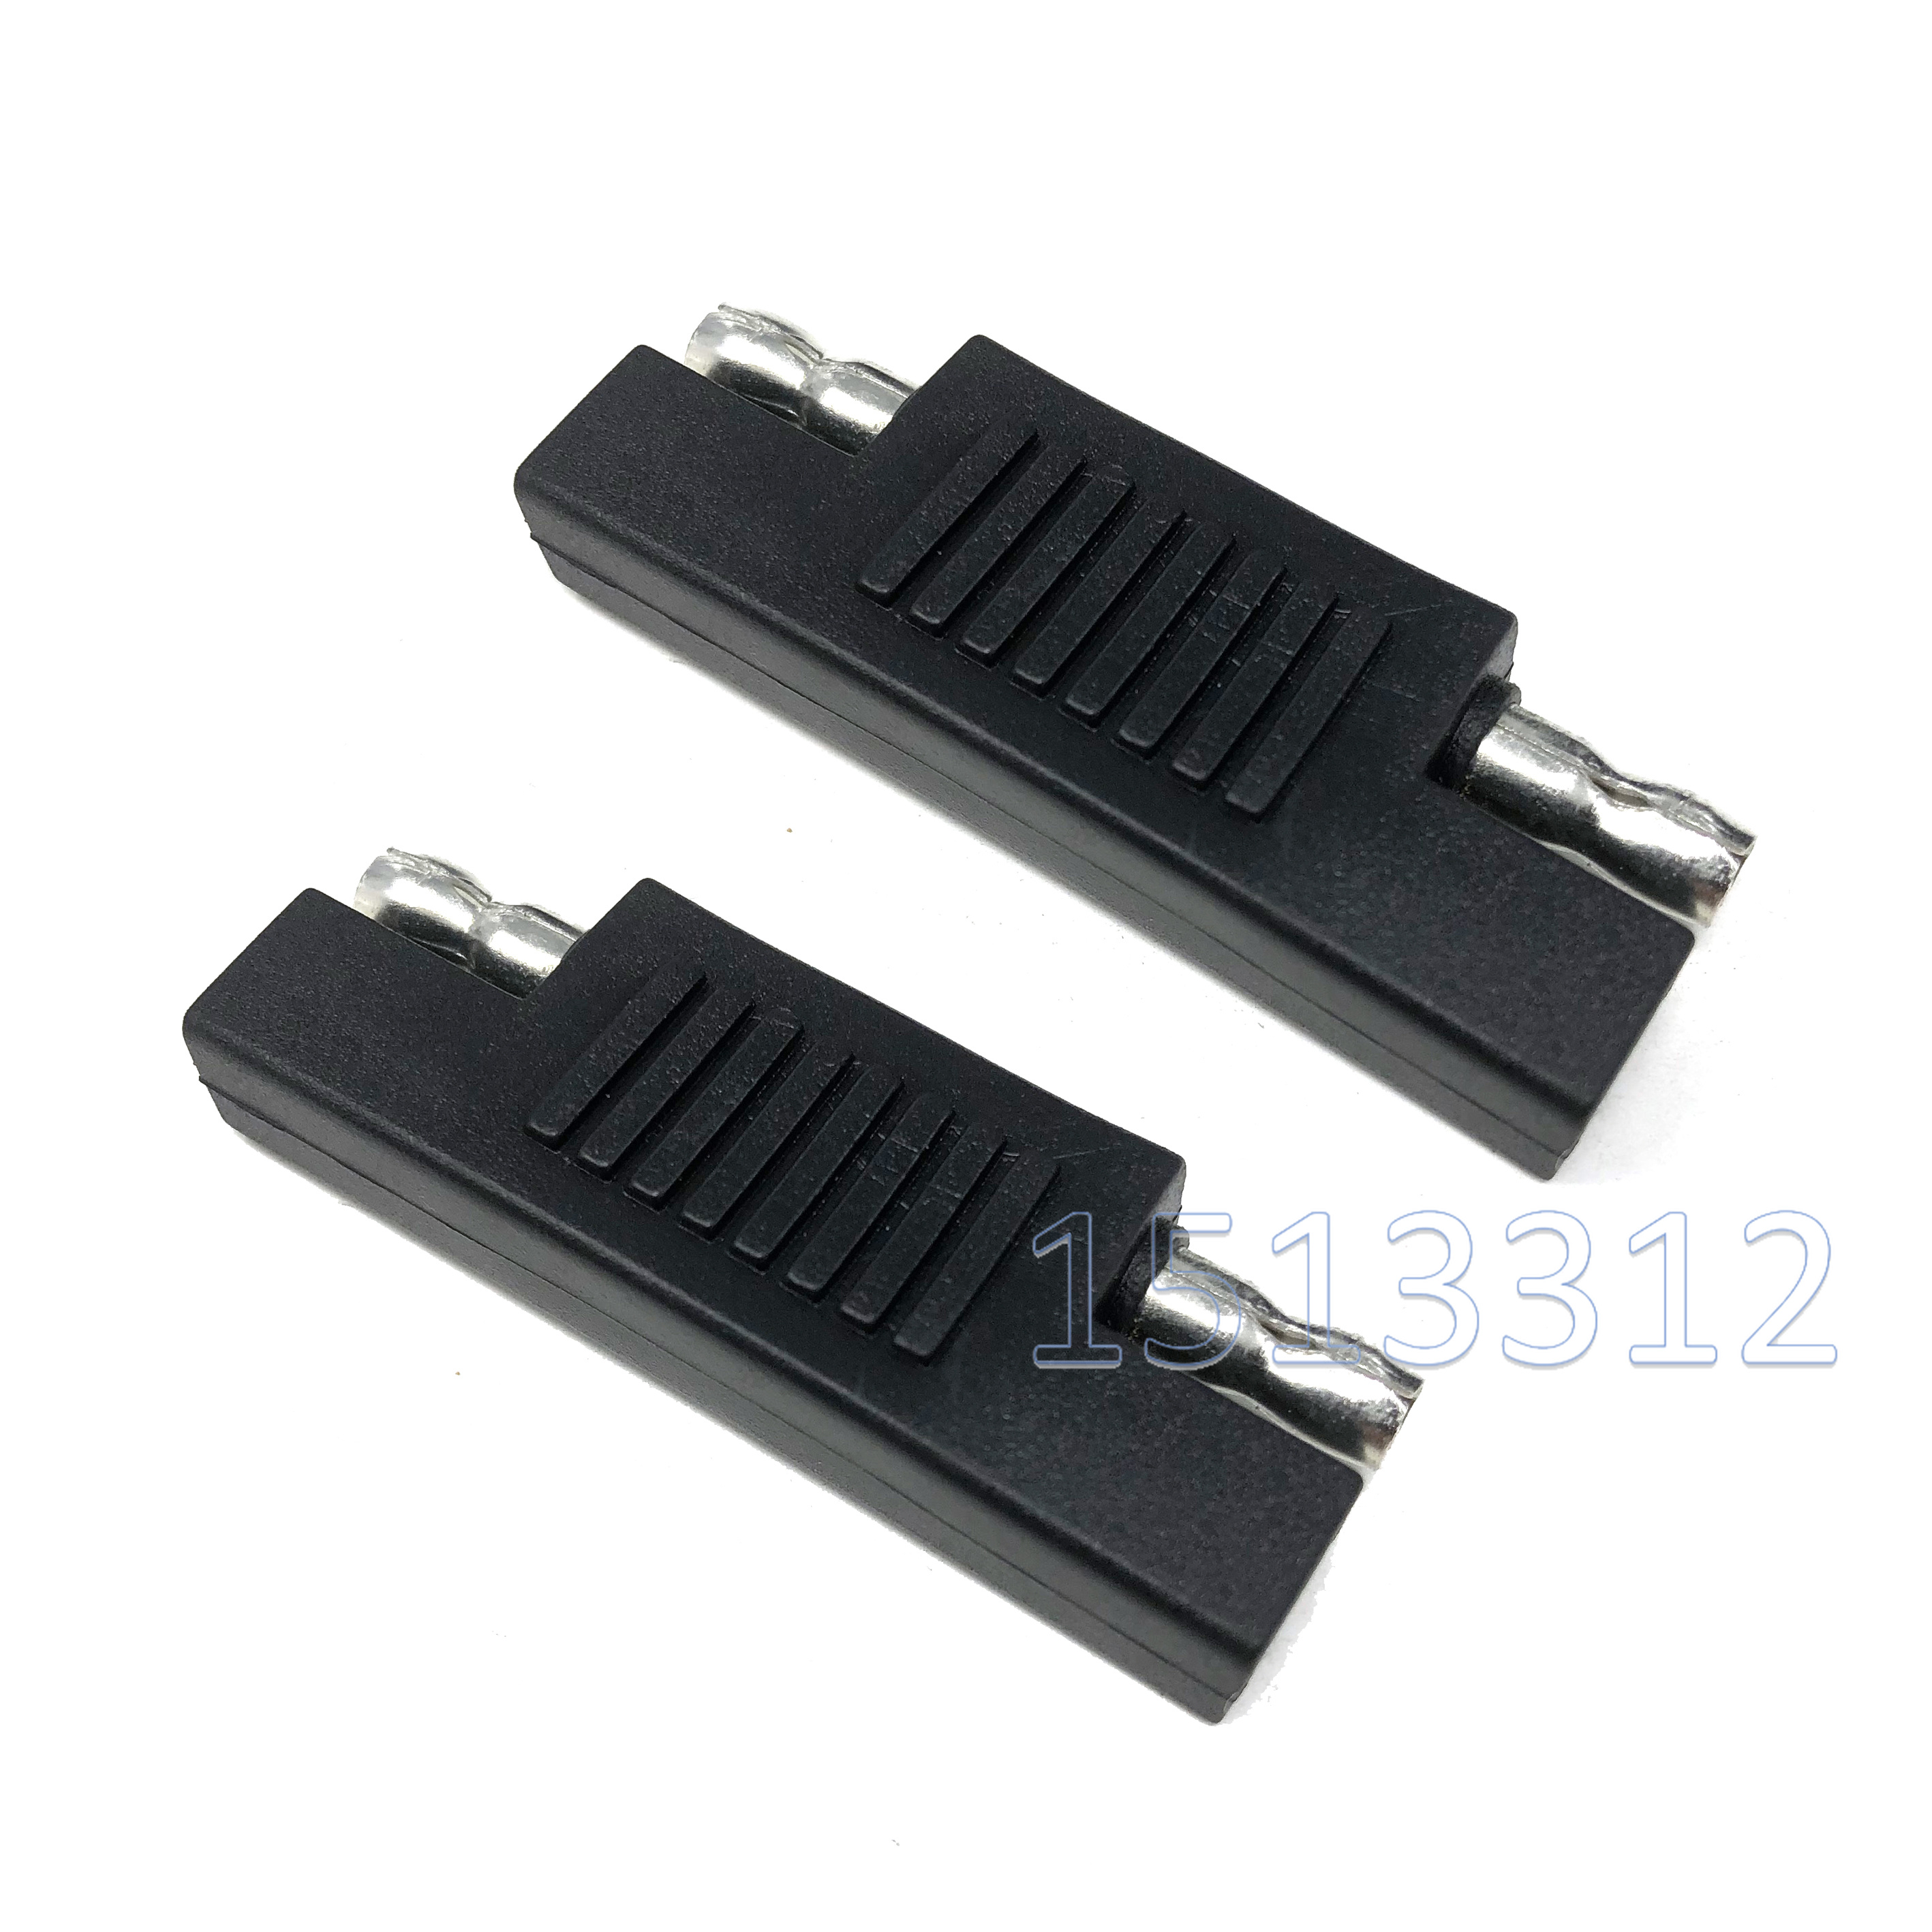 2PCS Solar SAE Polarity Reverse Adapter Connectors For Quick Disconnect Extension Cable Solar Panel Battery Power Maintainer